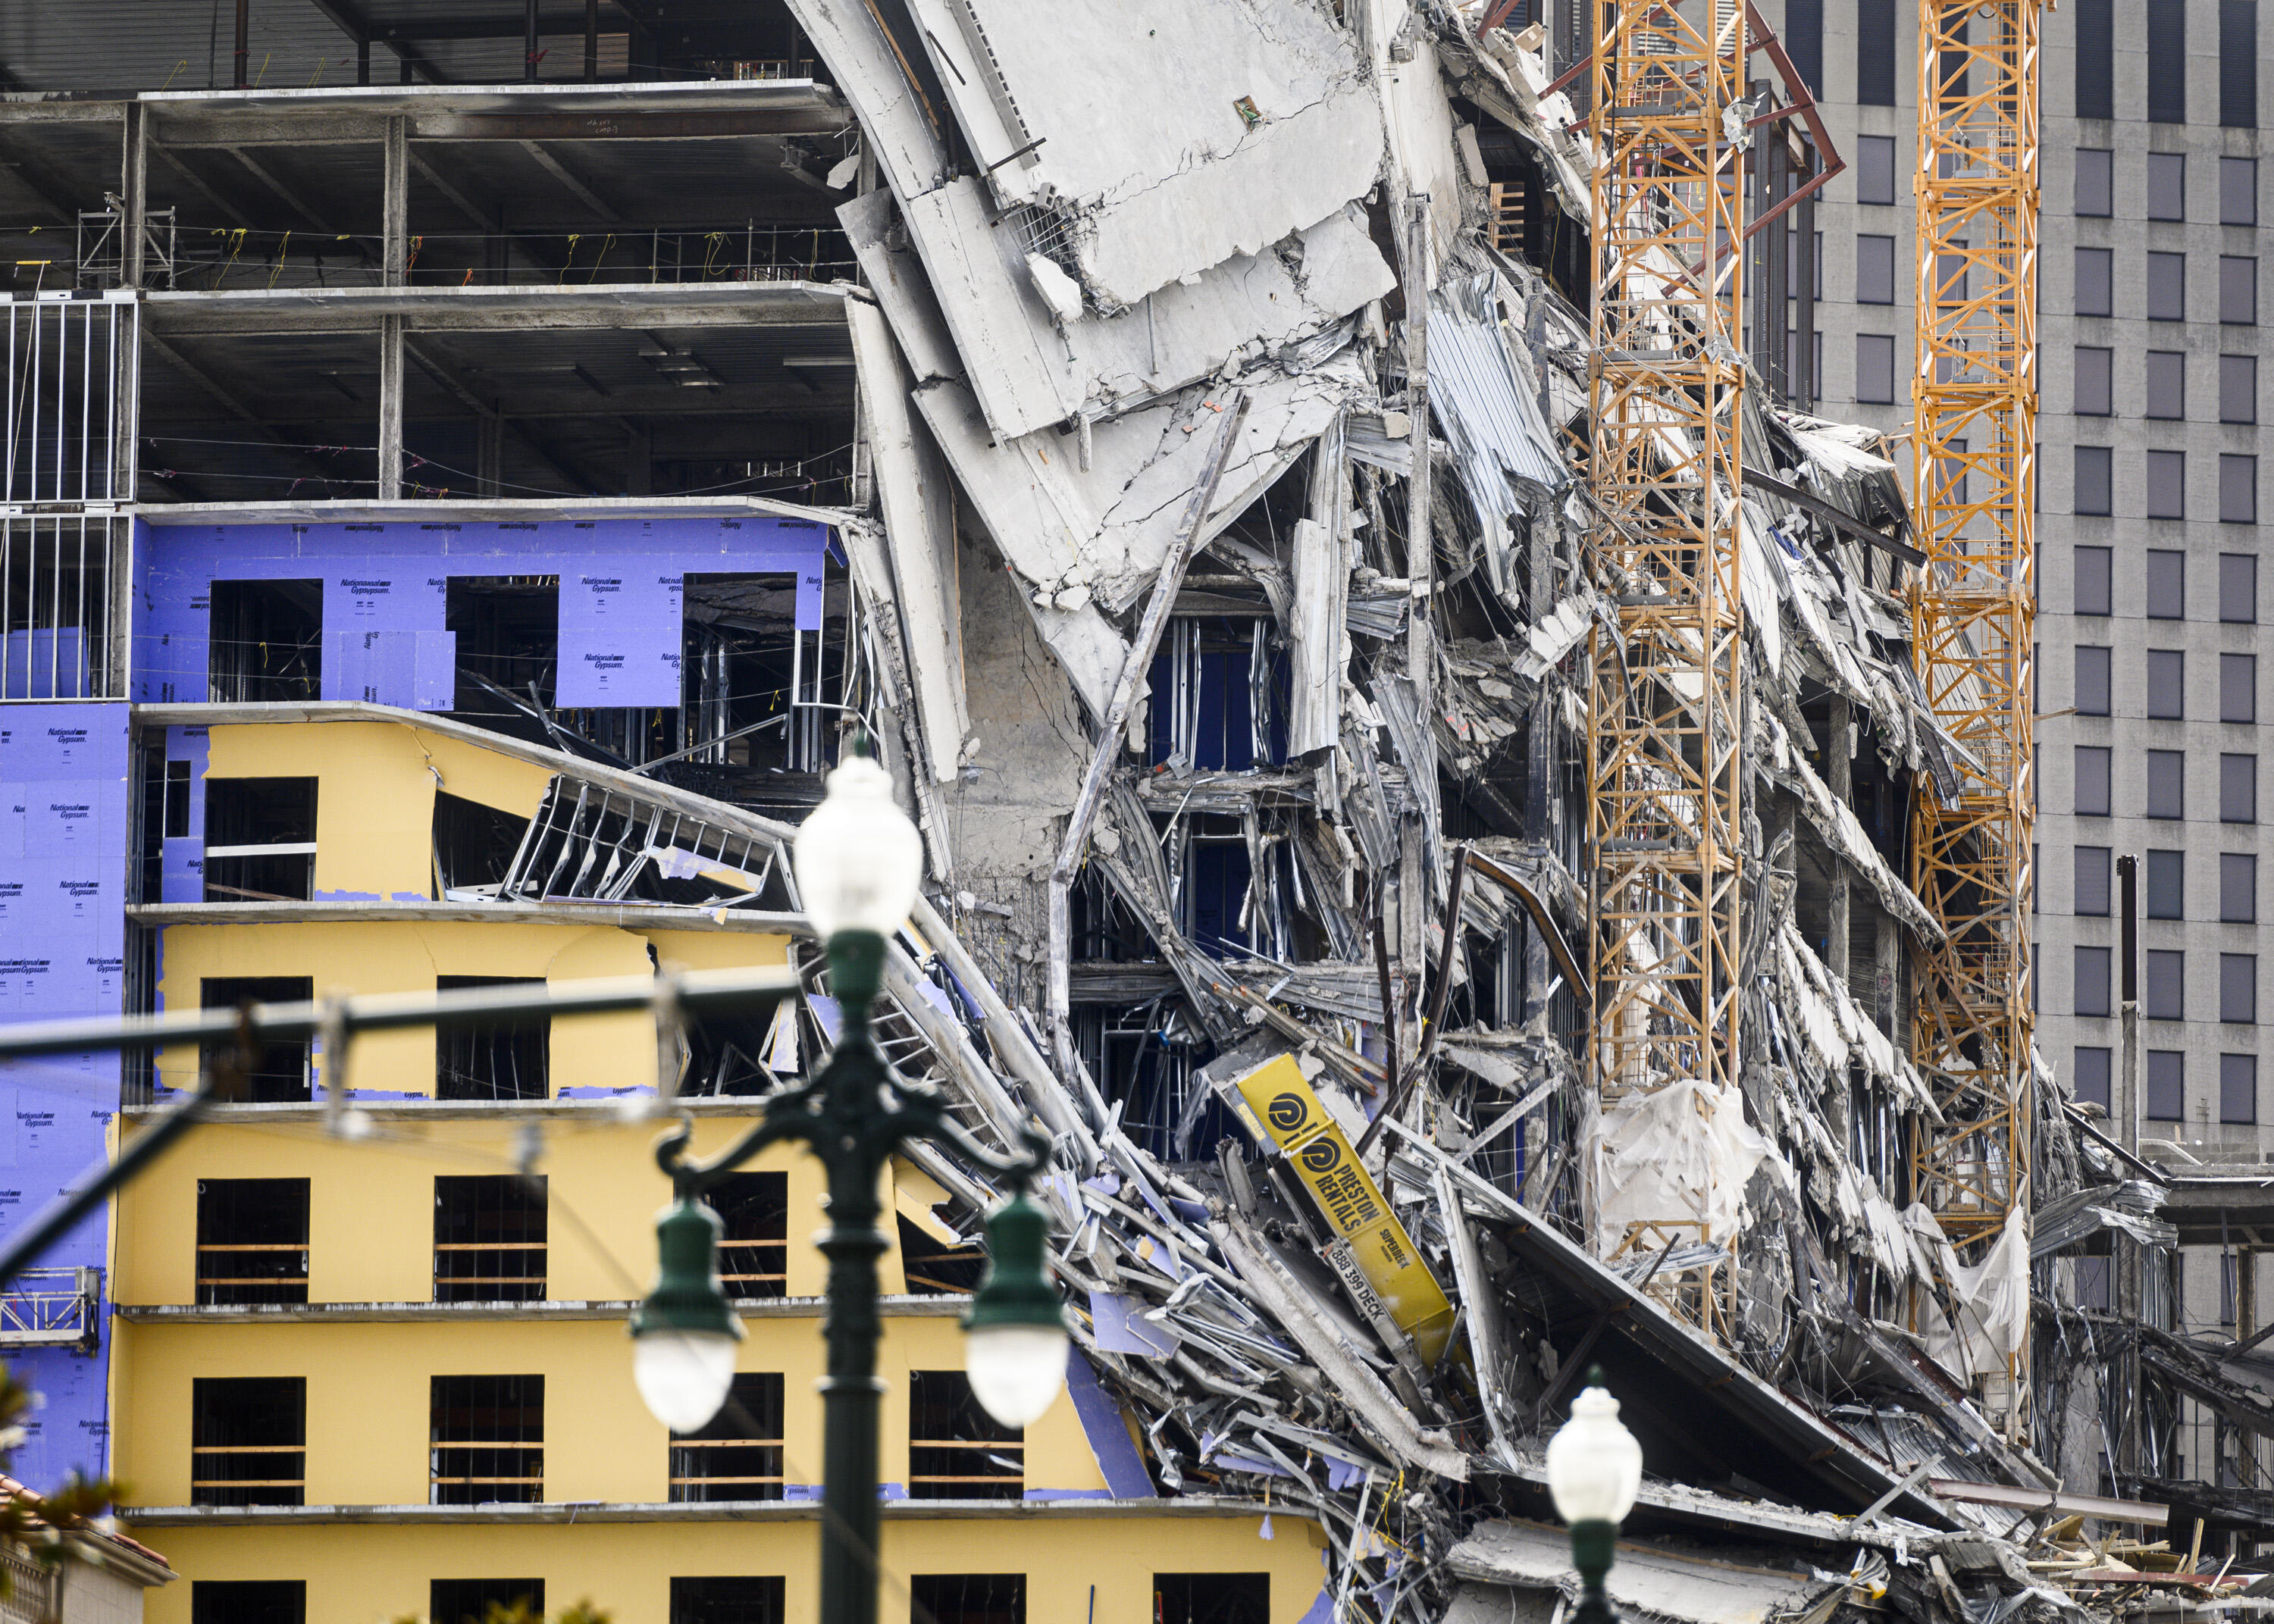 New Orleans City Officials Provide Update On Building Collapse